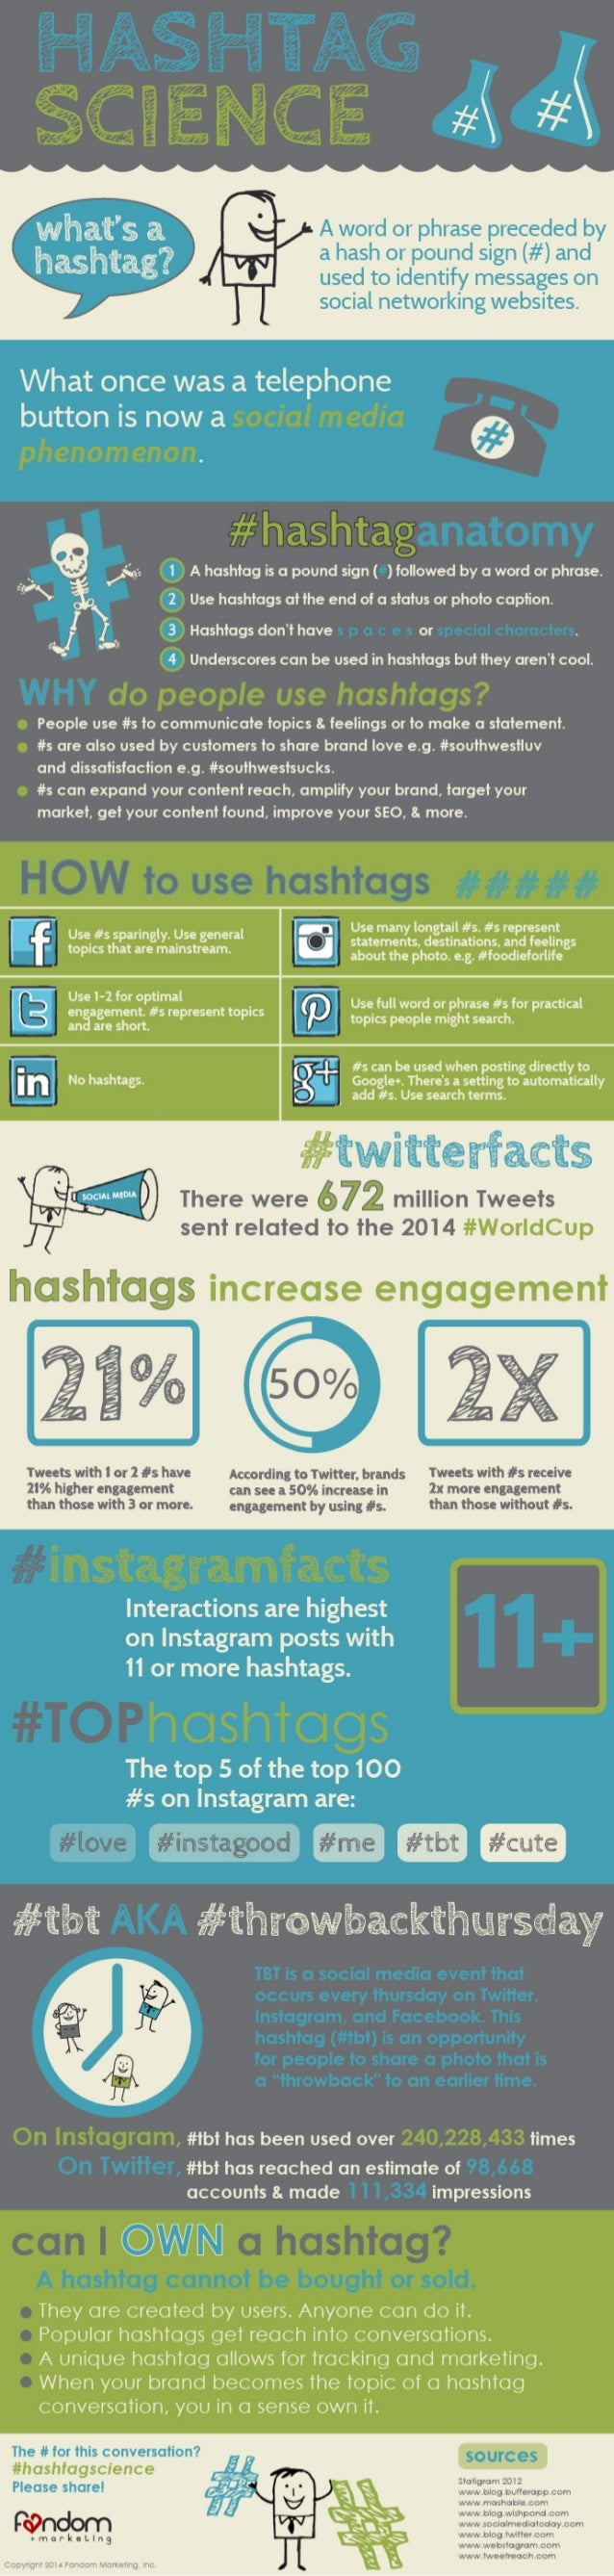 The Hashtag Science Infographic